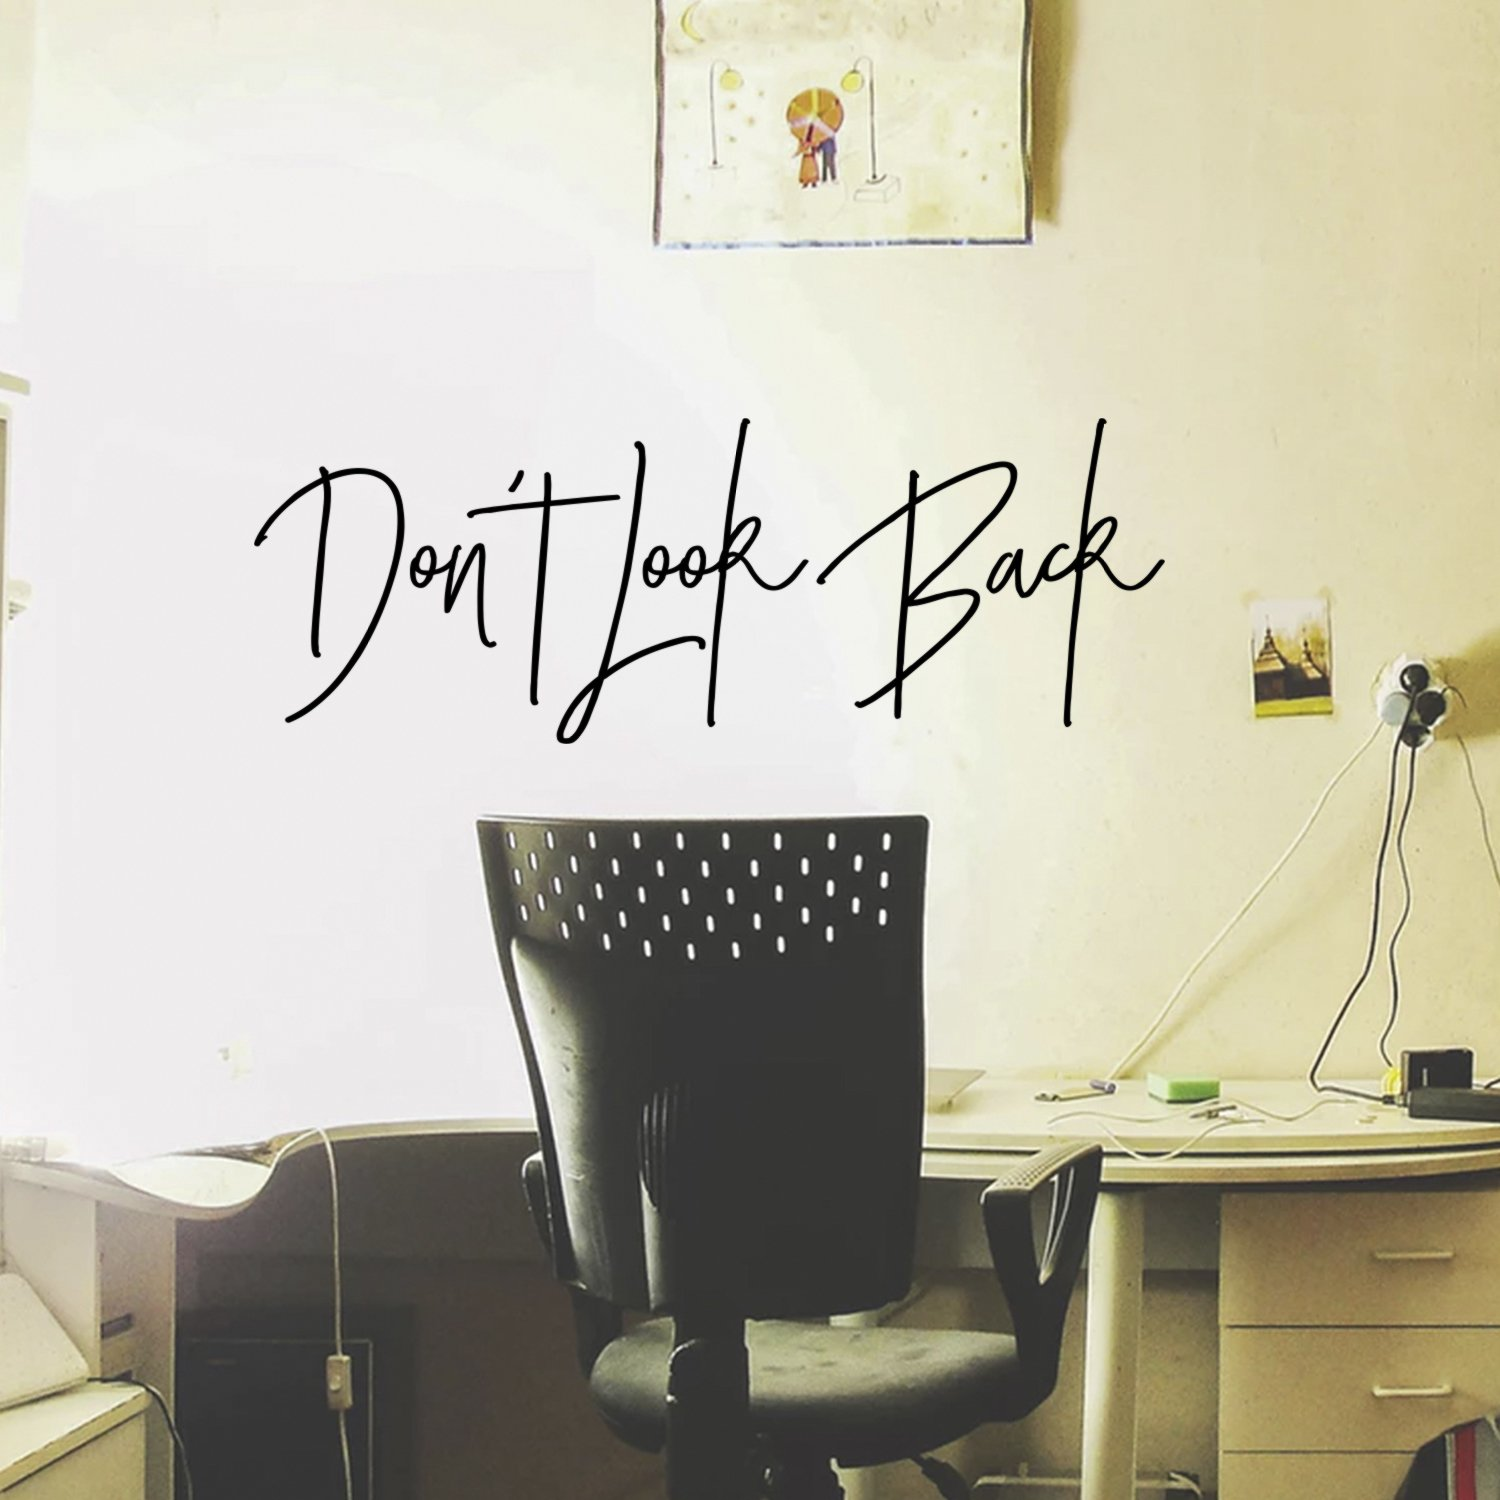 Vinyl Wall Art Decal - Don't Look Back - Motivational Quote - 10'' x 28'' - Inspirational Life Quote Sayings Home Decor Living Room Bedroom Office Work - Removable Sticker Decals